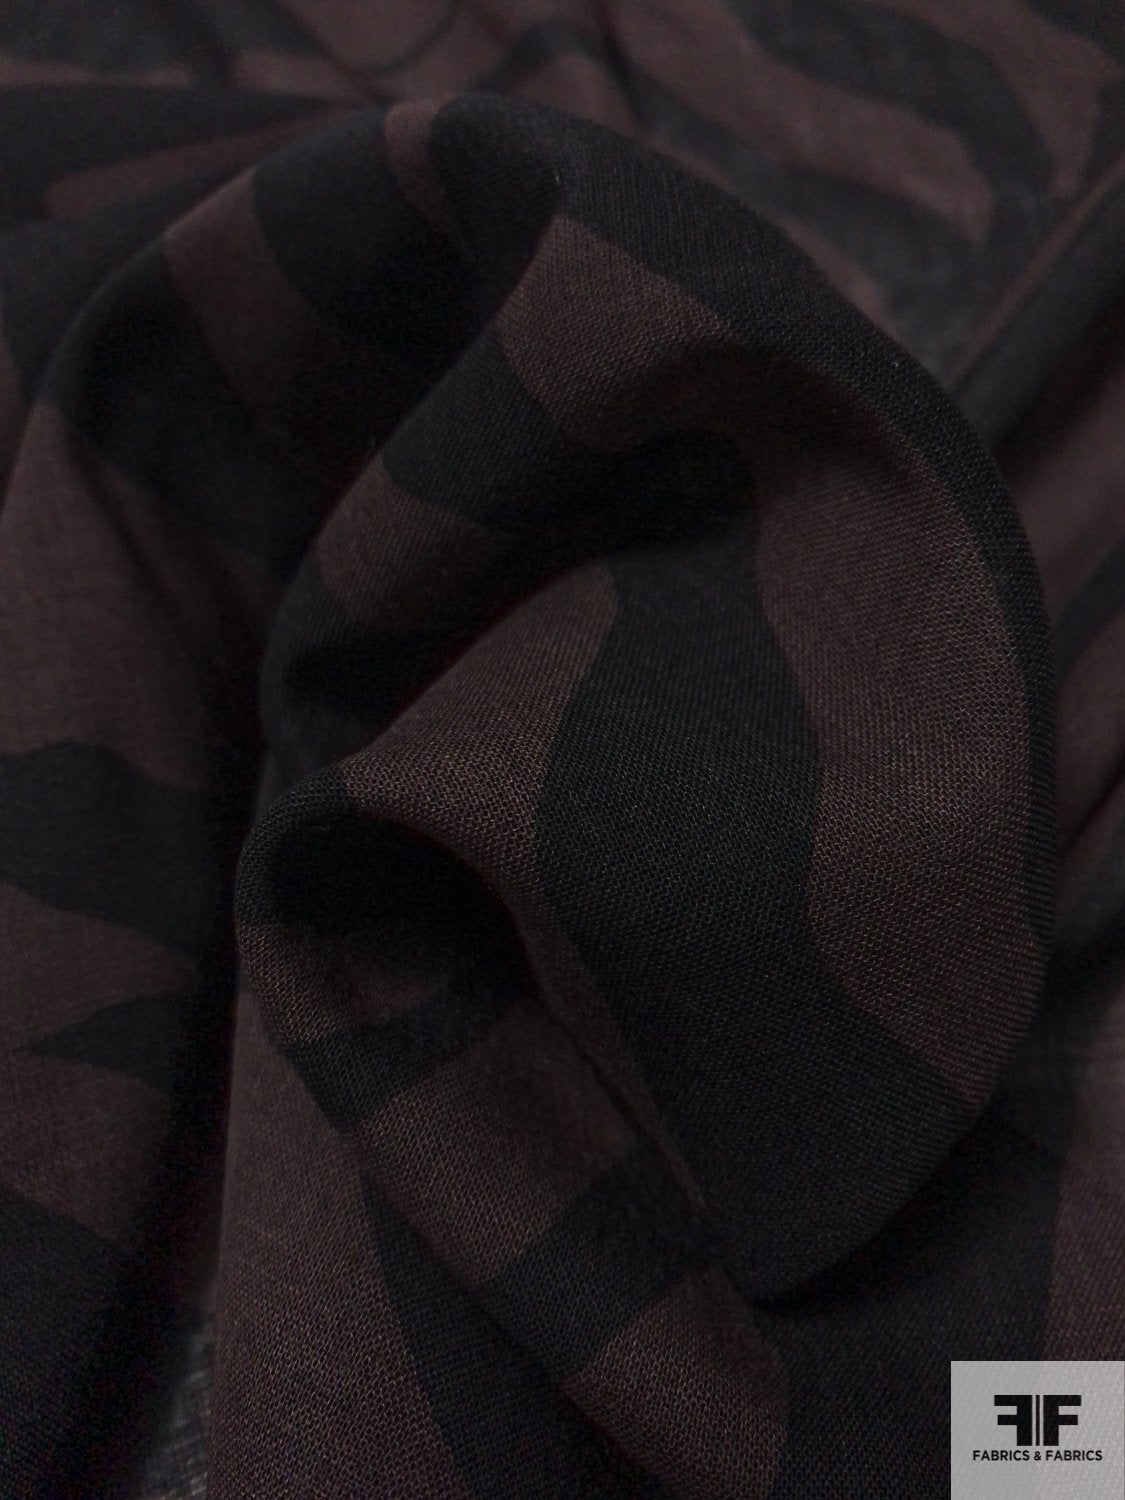 Bold Animal-Like Printed Fine Wool Challis - Brown / Black